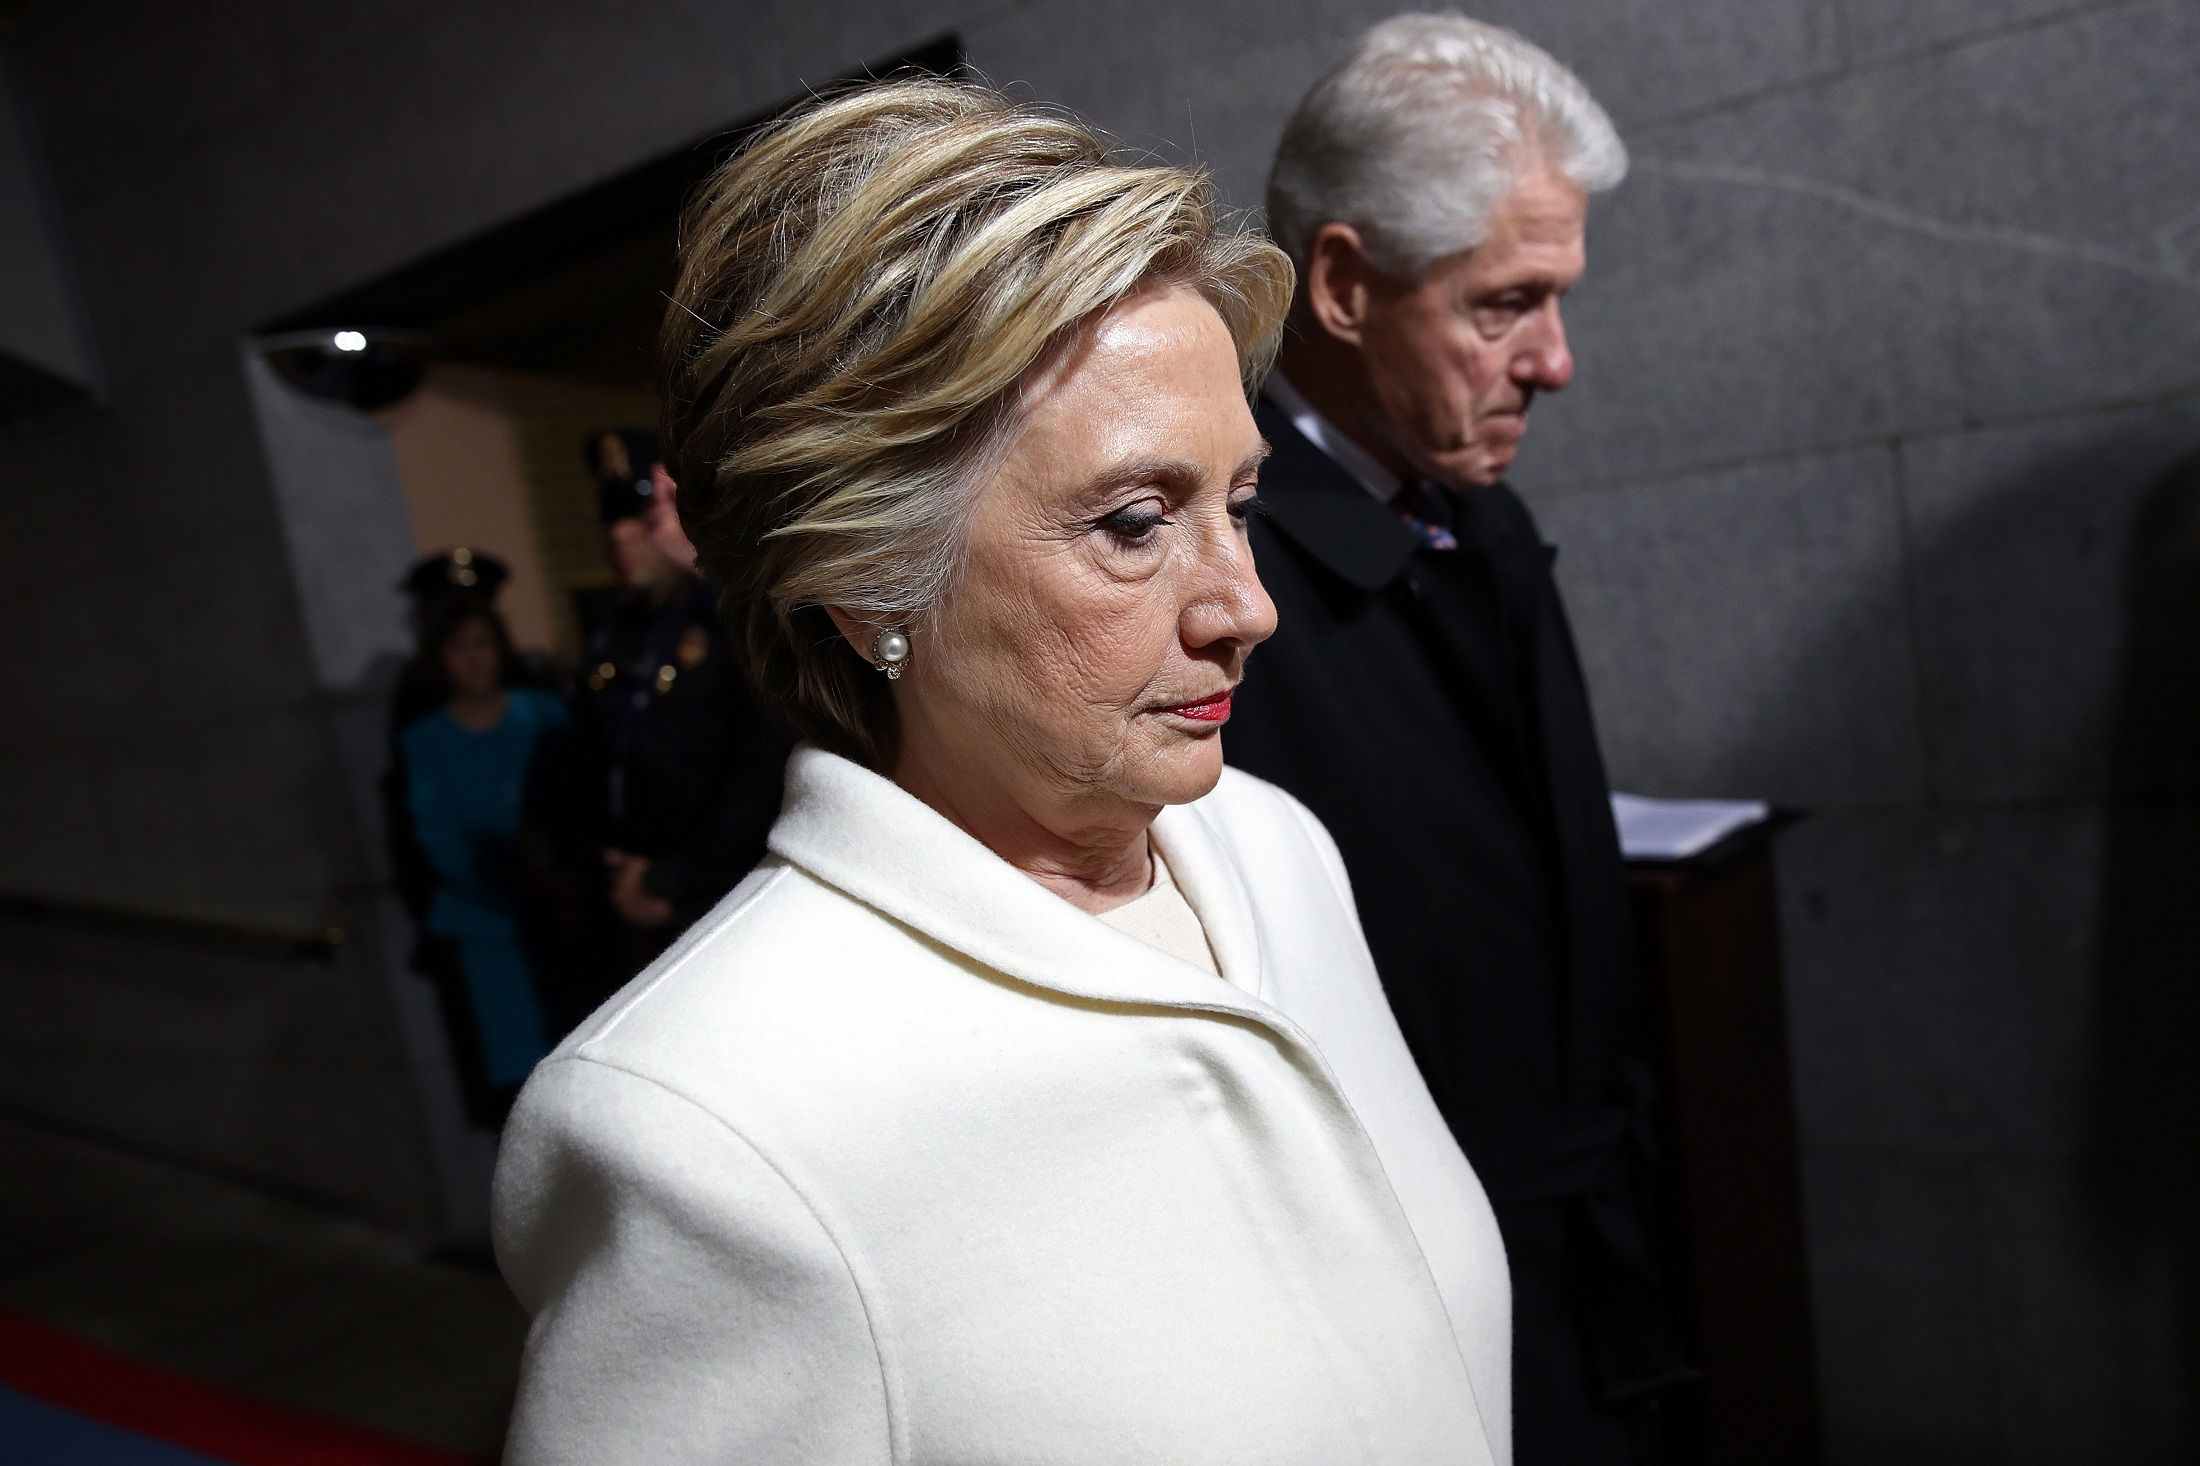 WASHINGTON, DC - JANUARY 20: Former Democratic presidential nominee Hillary Clinton (L) and former President Bill Clinton arrive on the West Front of the U.S. Capitol on January 20, 2017 in Washington, DC. In today's inauguration ceremony Donald J. Trump becomes the 45th president of the United States.   Win McNamee/Getty Images/AFP